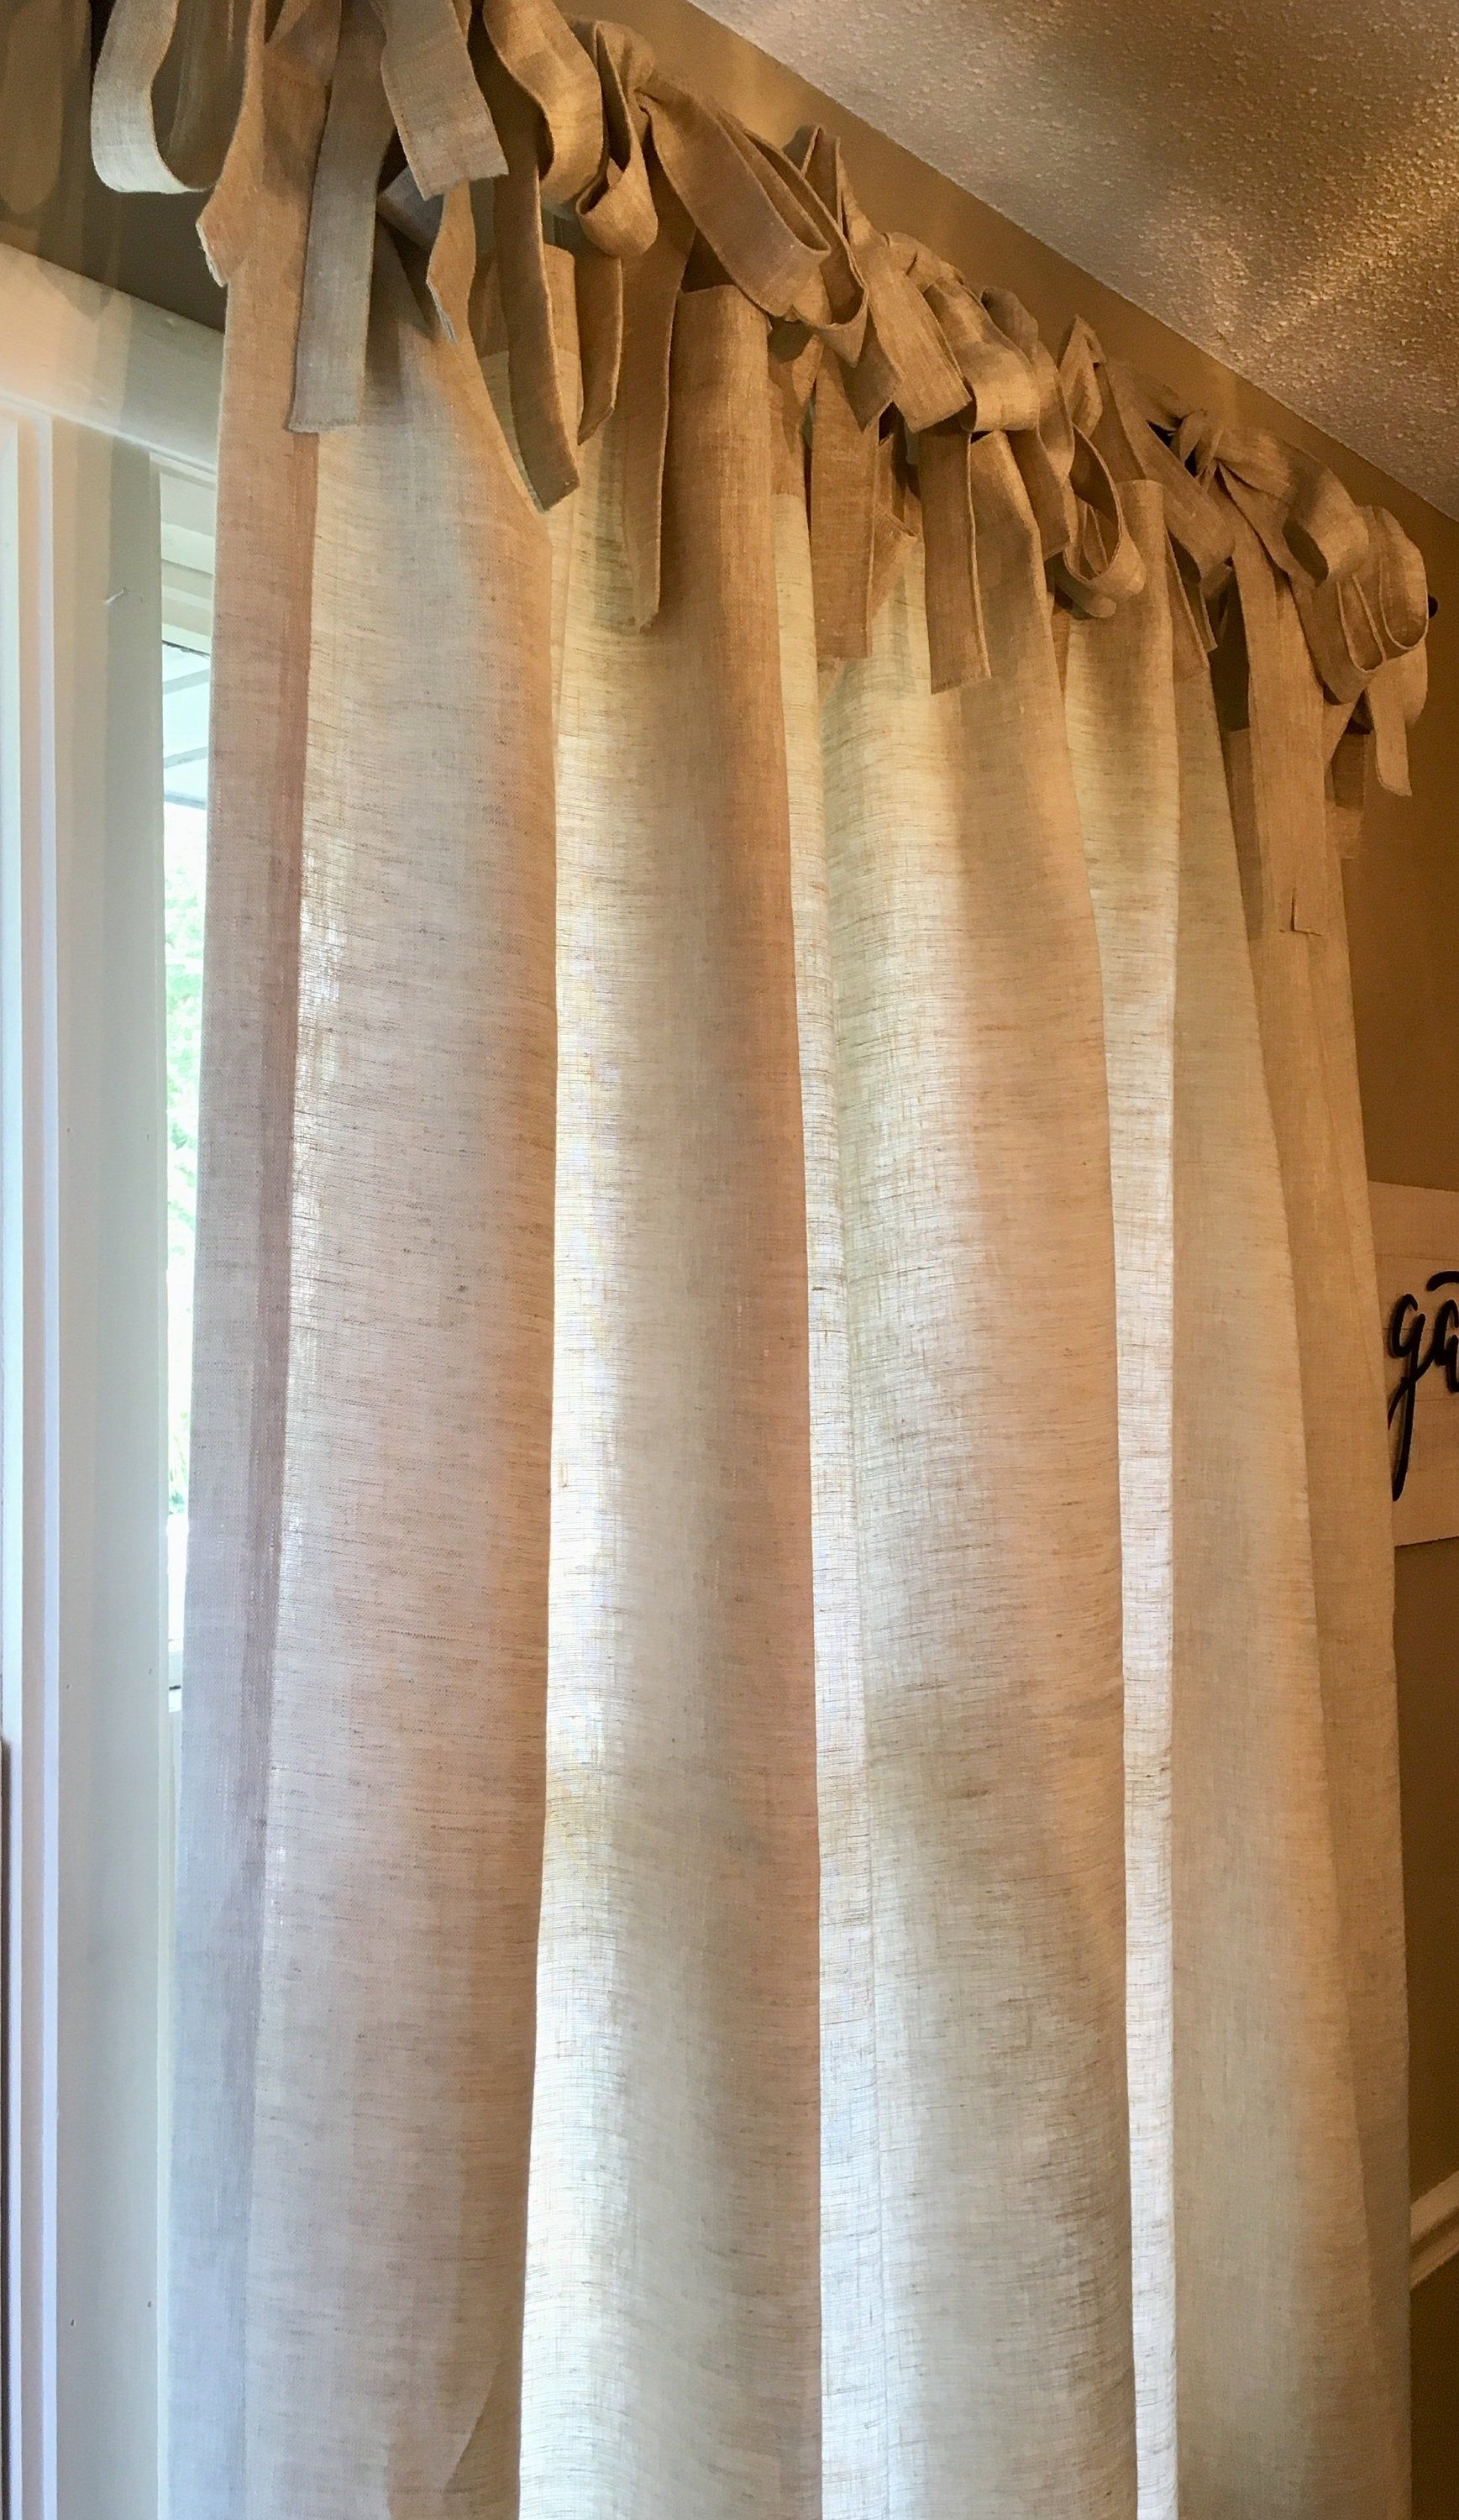 100 Linen Tie Top Curtain Panel Any Length Many Color Choices In 2020 Panel Curtains Tie Top Curtains Curtains